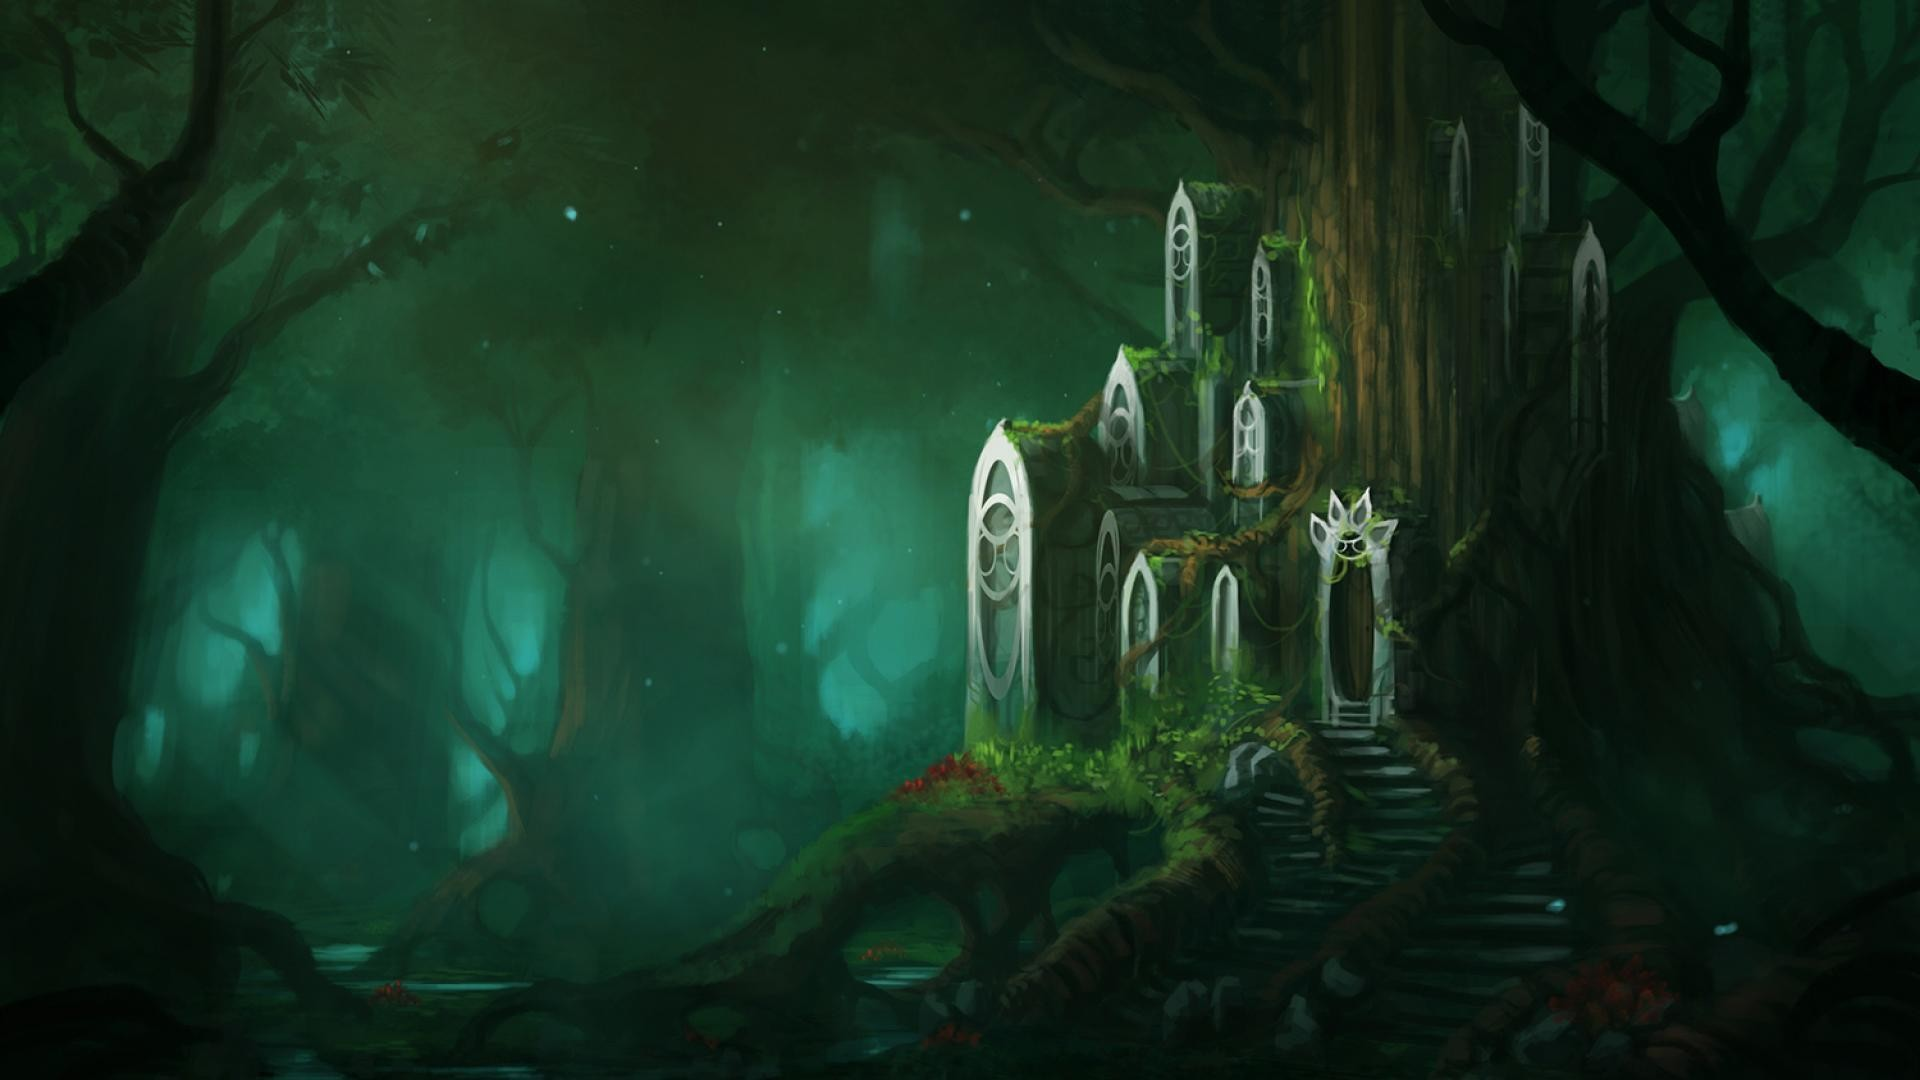 1920x1080 Fantasy Forest Wallpaper Download 13126 Full HD Wallpaper Desktop .